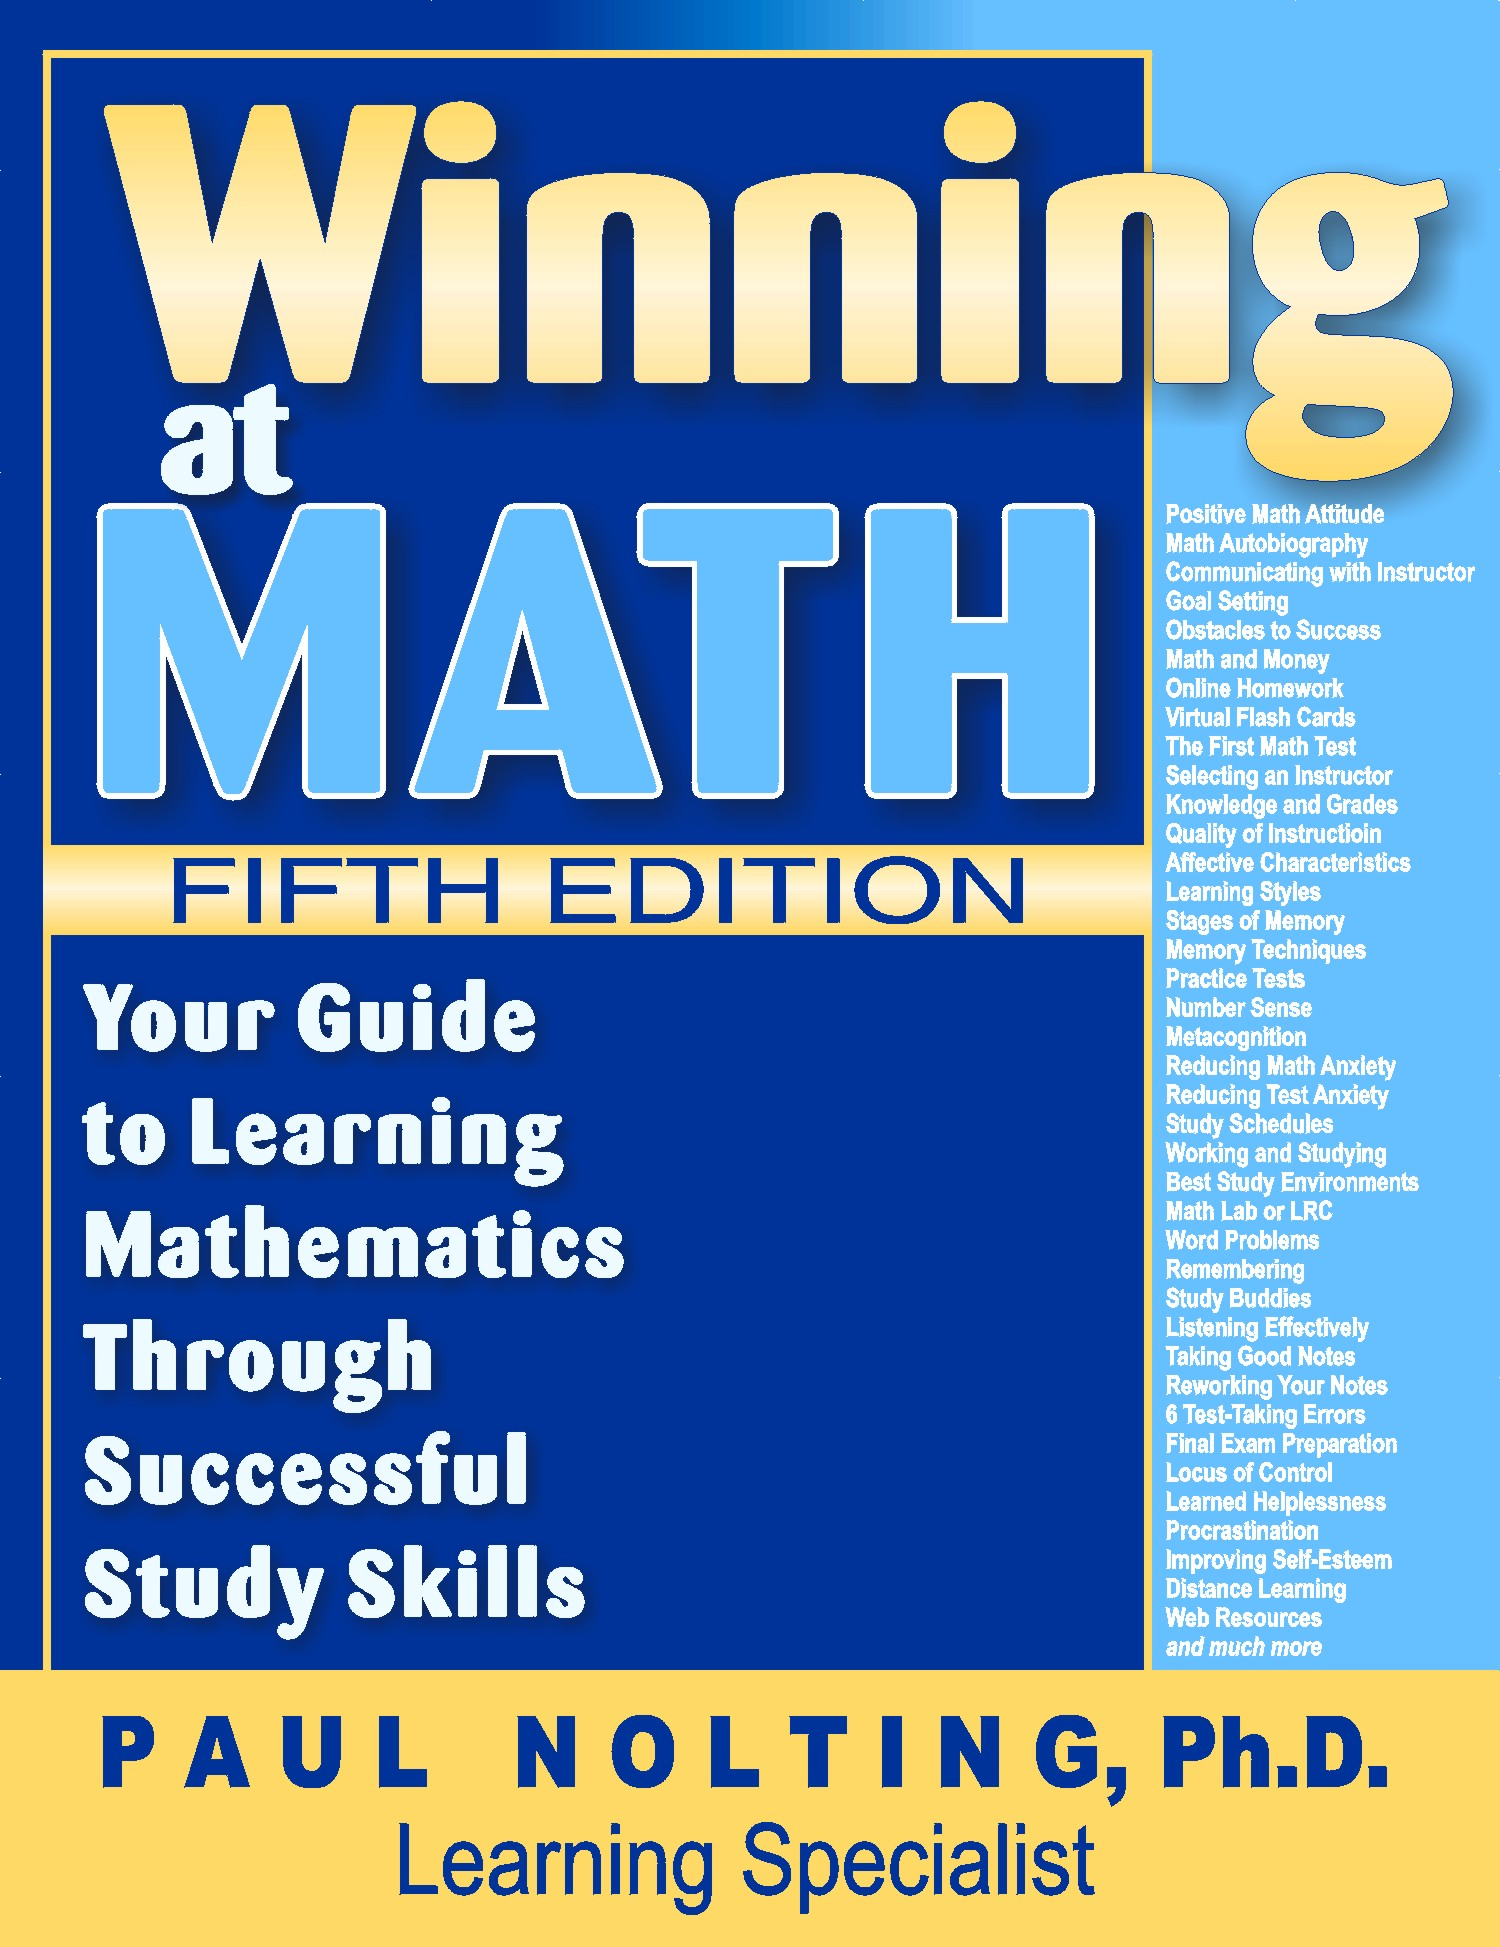 Winning at Math 5th Edition: Study Skills Computer Evaluation So